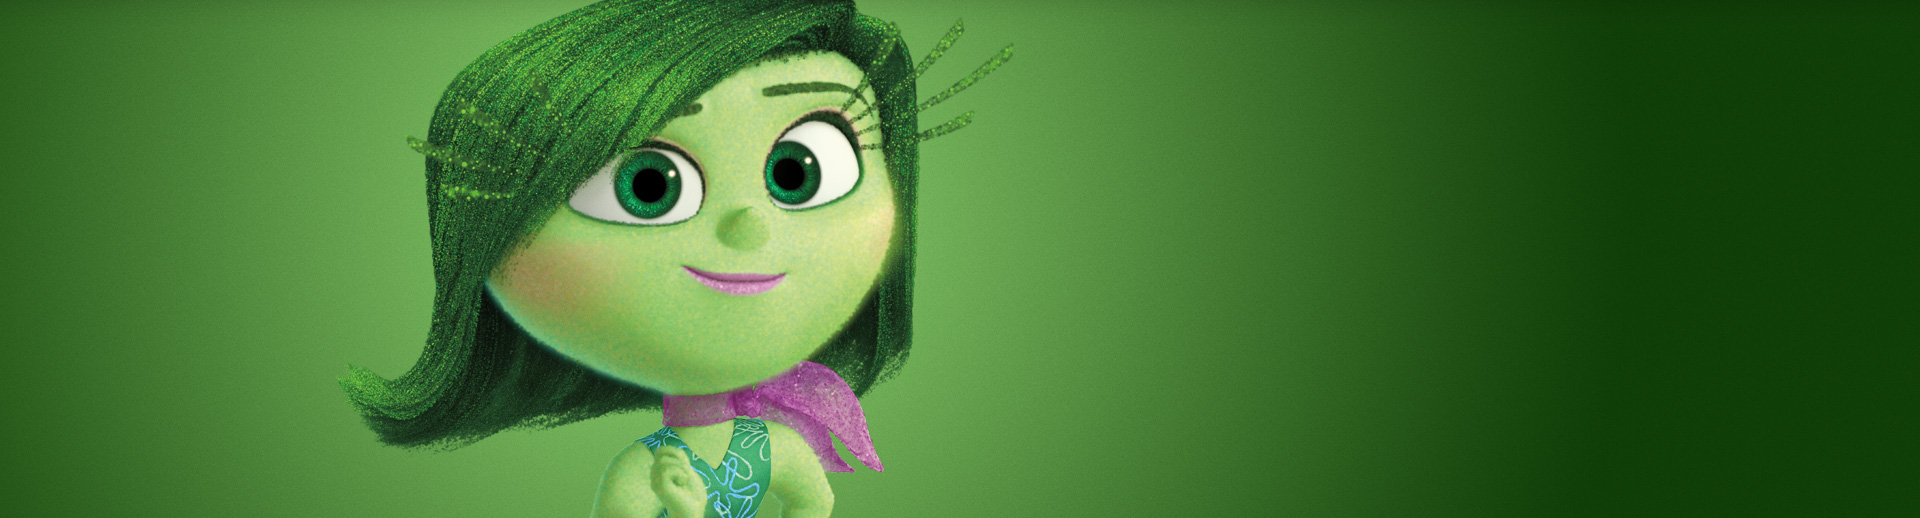 Inside Out - Disgust - Inside Out Photo (38926962) - Fanpop